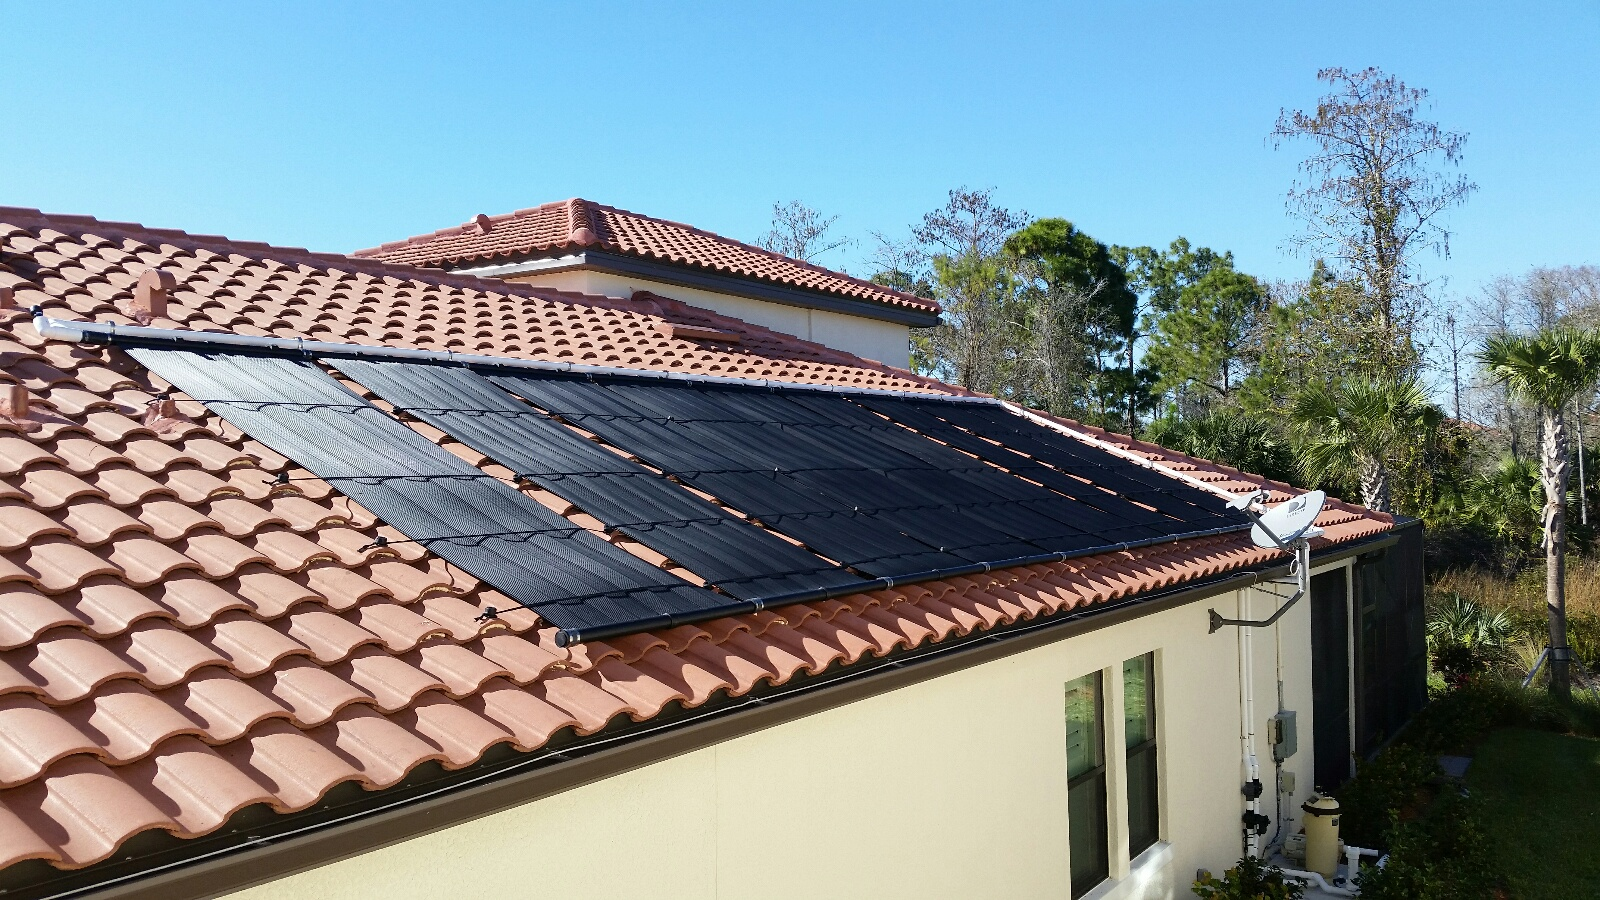 Solar Swimming Pool Heater Season is Now! - Florida Solar ...